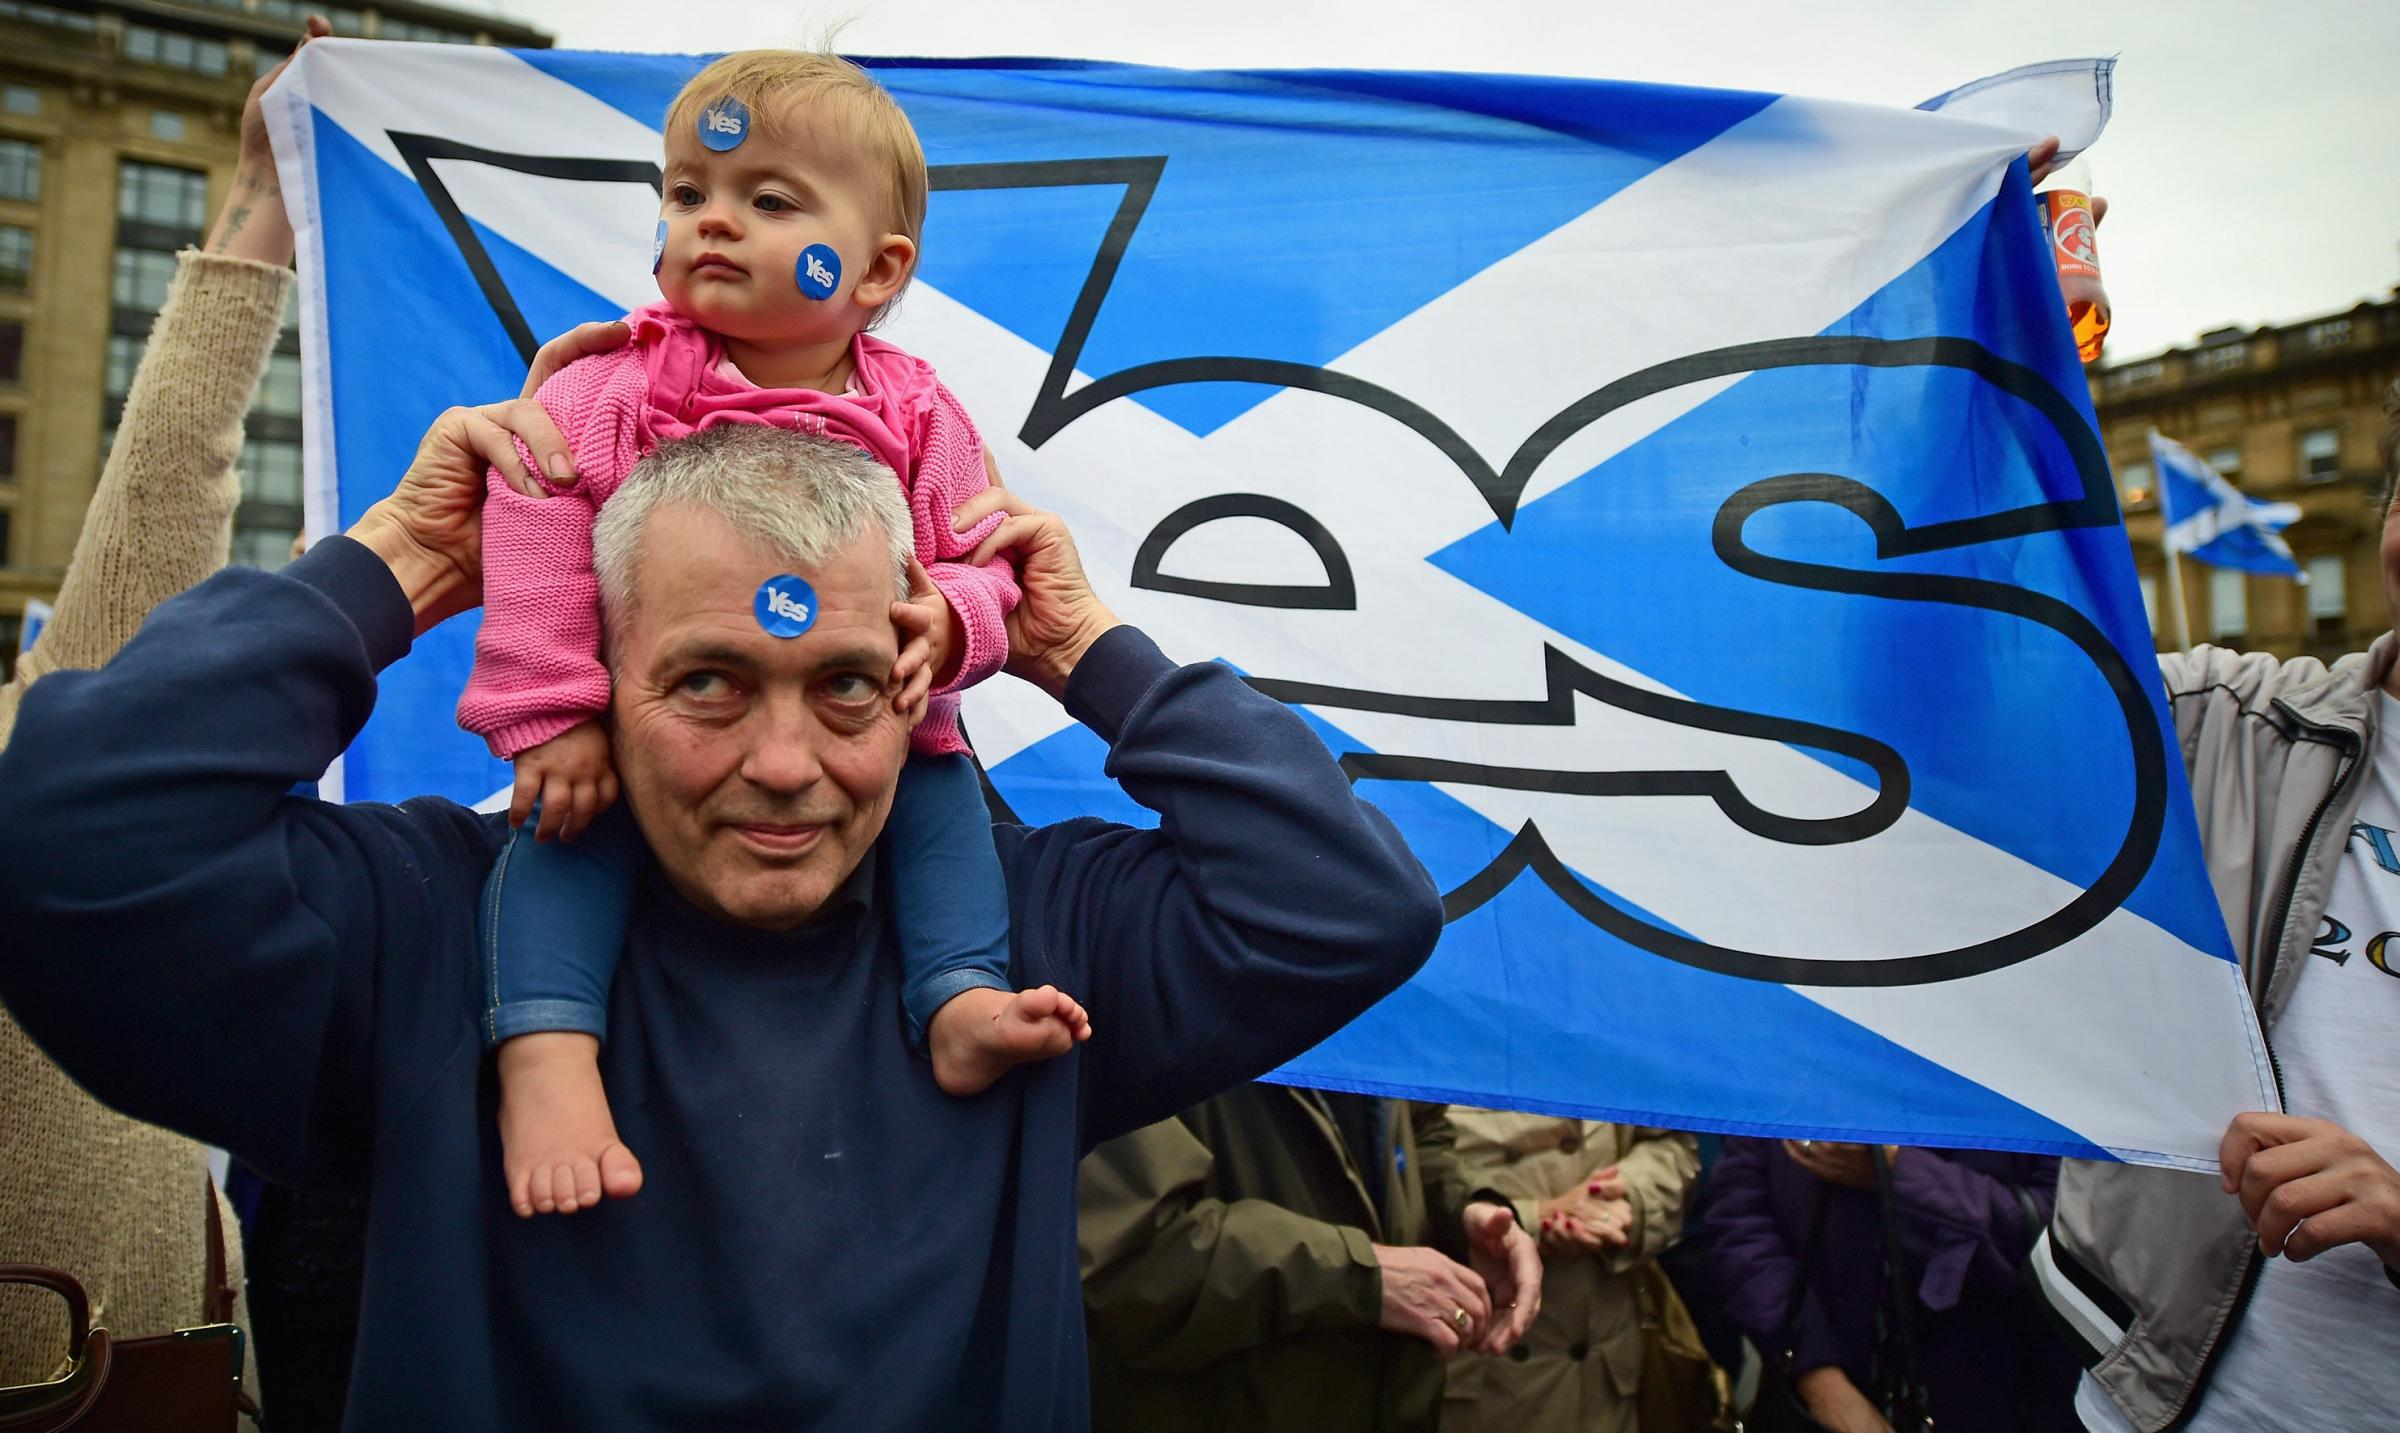 A new prospectus must re-motivate and inspire Scots to vote for independence